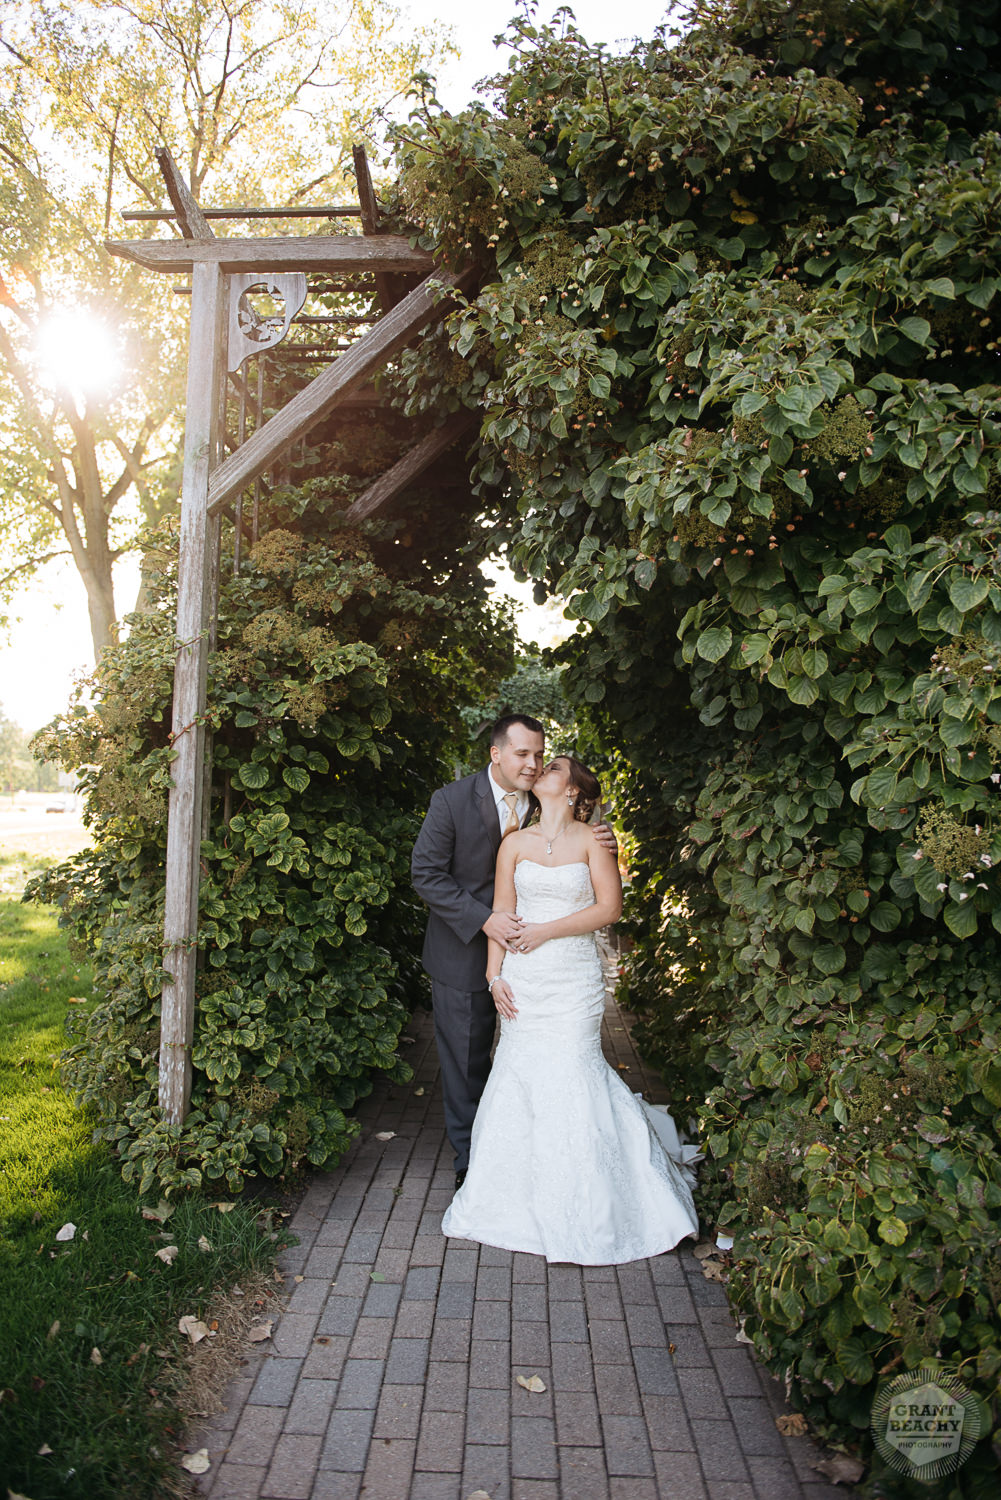 Grant Beachy wedding photographer, south bend, elkhart, chicago-44.jpg